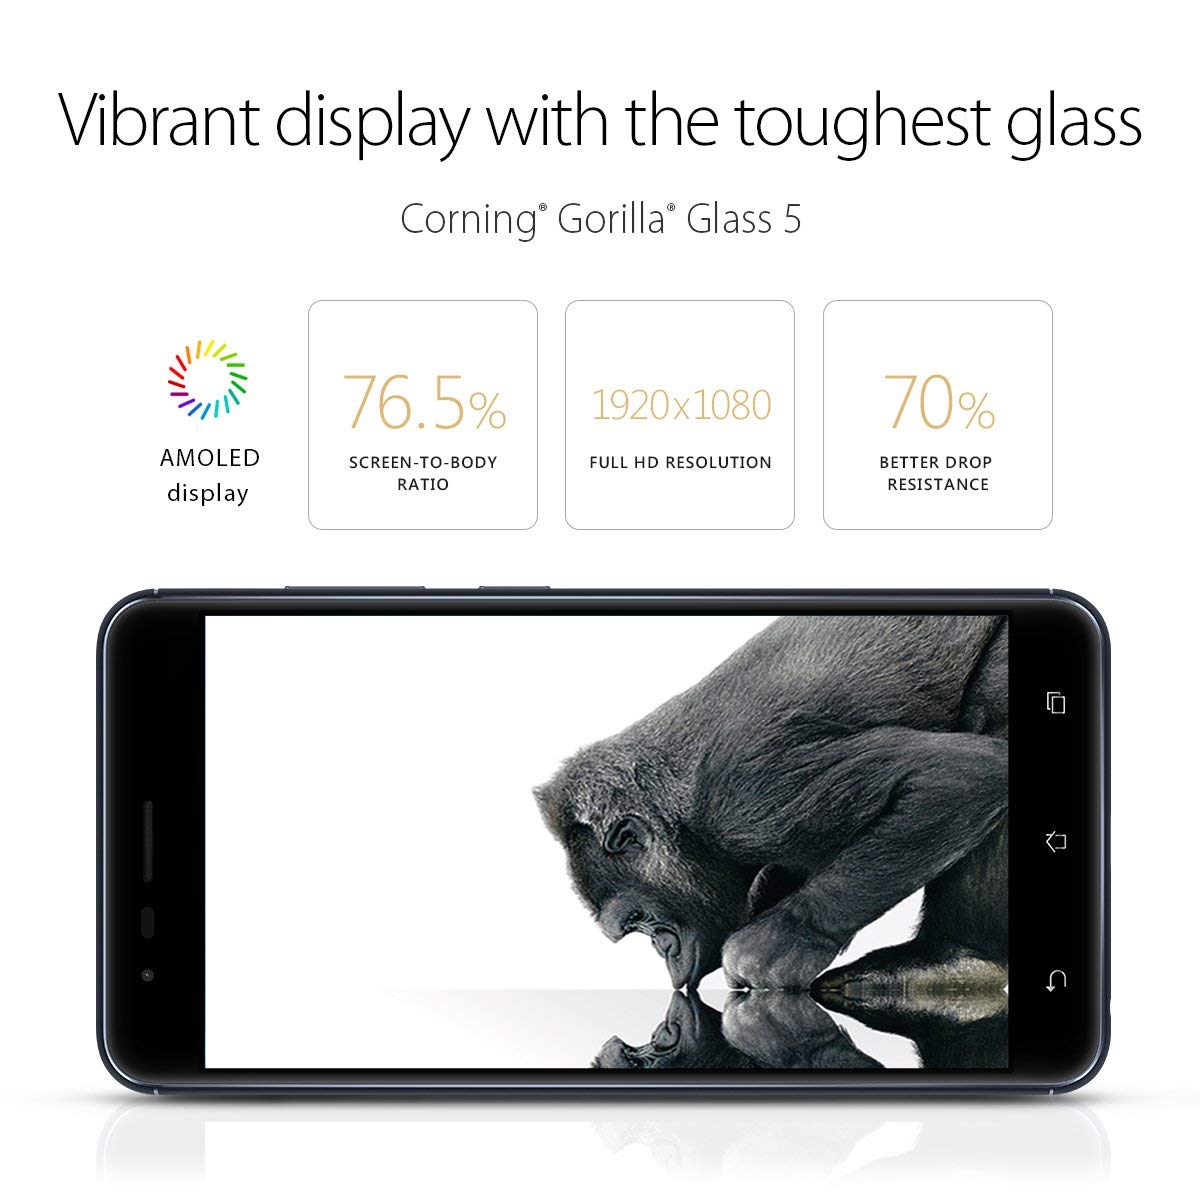 Asus ZenFone 3 Vibrant AMOLED Gorilla Glass 5 display